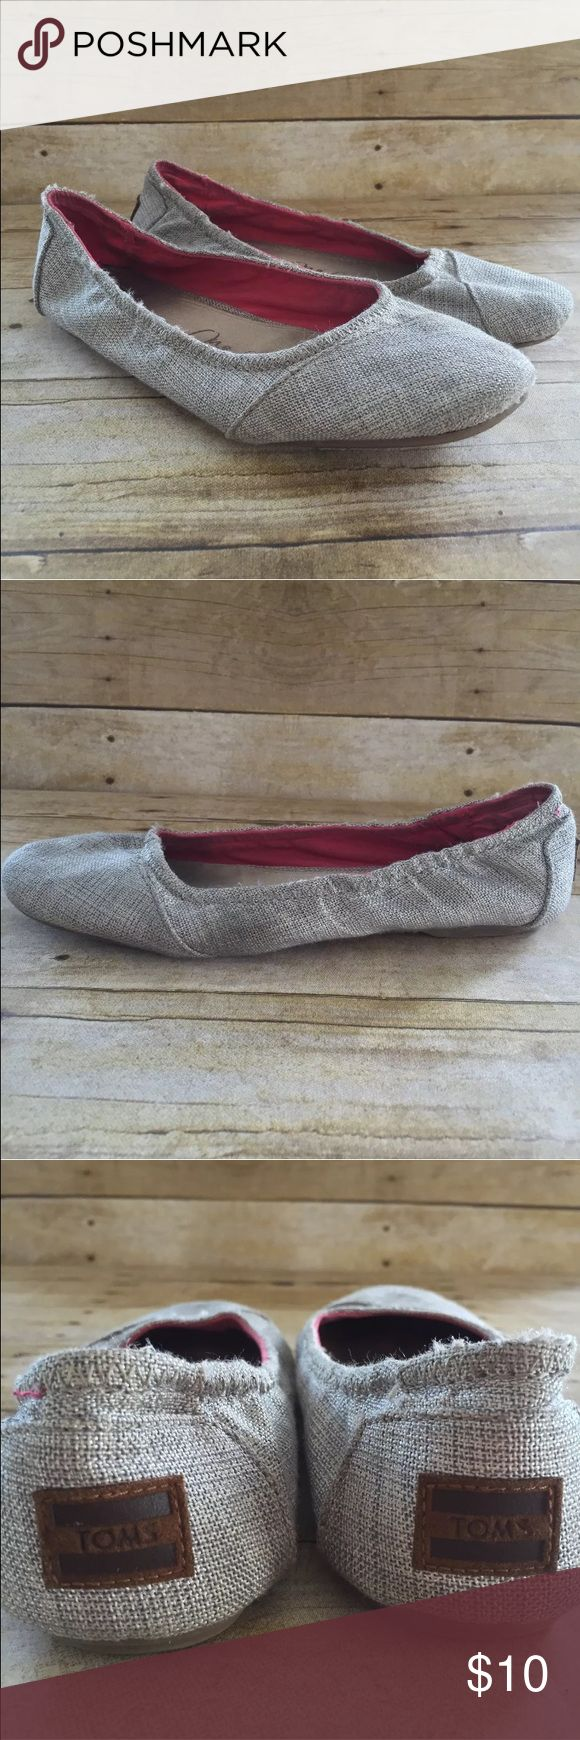 "Toms One For One Silver Tweed Ballet Flats Shoes Toms One For One  Silver Fabric Tweed Ballet Flats Shoes  Youth Size 5 Approximately 8.75"" heel to toe Width 3"" Nice preowned condition. These have been worn and loves. Shows war to the footbed and soles. Toms Shoes Sneakers"